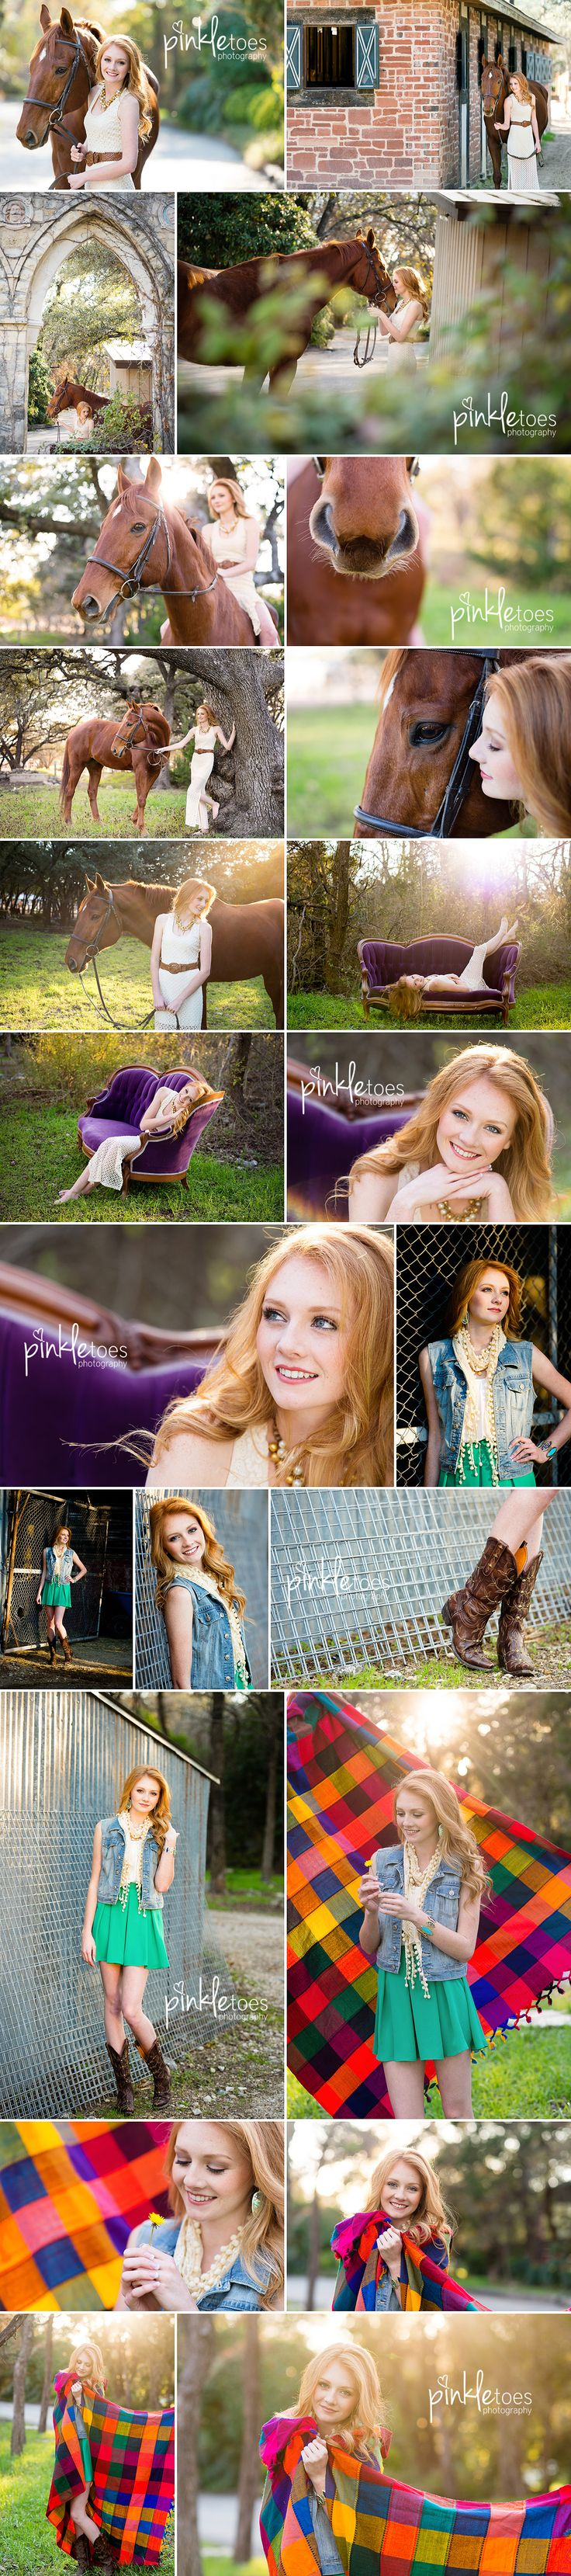 kw-austin-senior-portraits-horse-velvet-couch-colorful-natural-vibrant-high-school-b